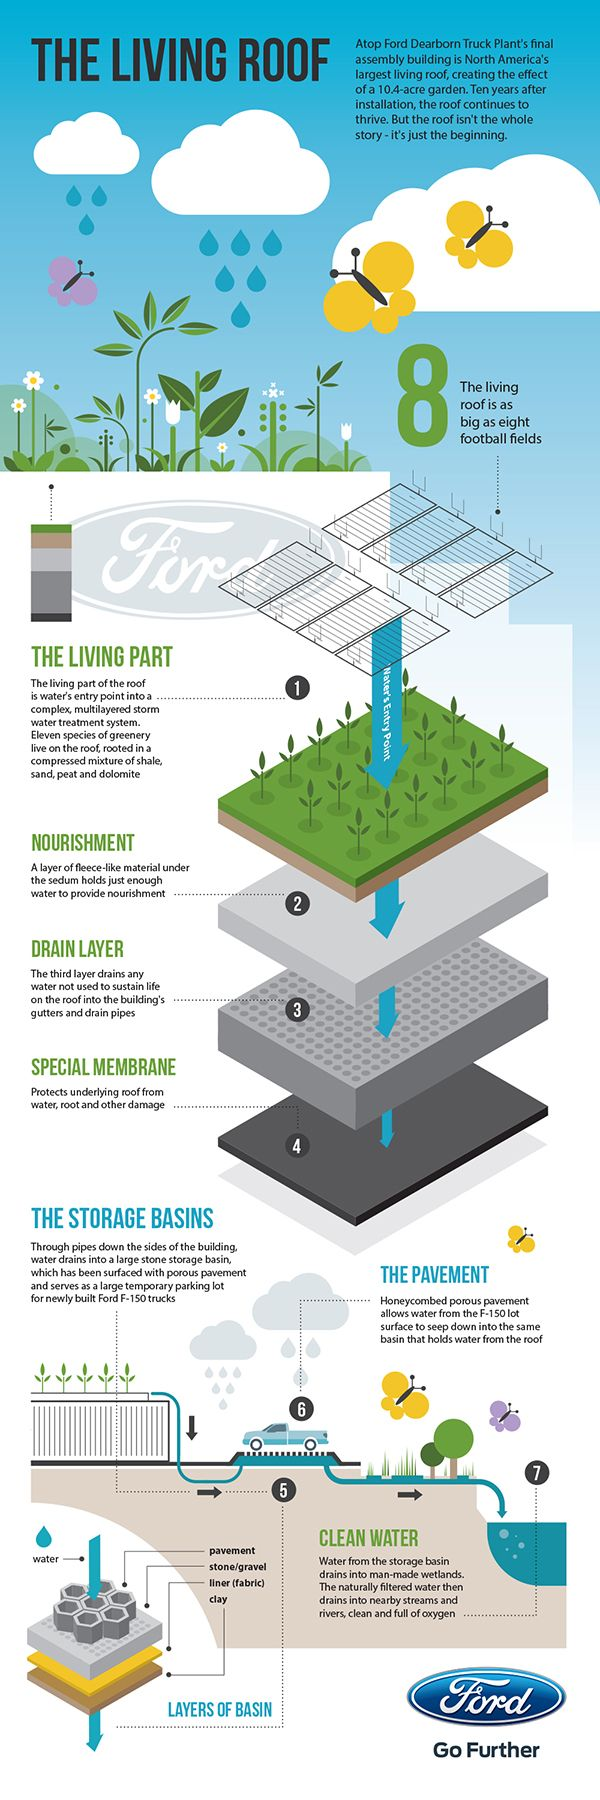 www.infographicbox.com #INFOGRAPHIC Ford: The Living Roof: Ten years post-installation, North America's largest living roof – about the size of eight football fields – continues to flourish atop Dearborn Truck Plant's final assembly building, part of the Ford Rouge Center. Various plants, insects and animals have come to depend on what is now a thriving ecosystem that equates to a 10.4-acre garden.